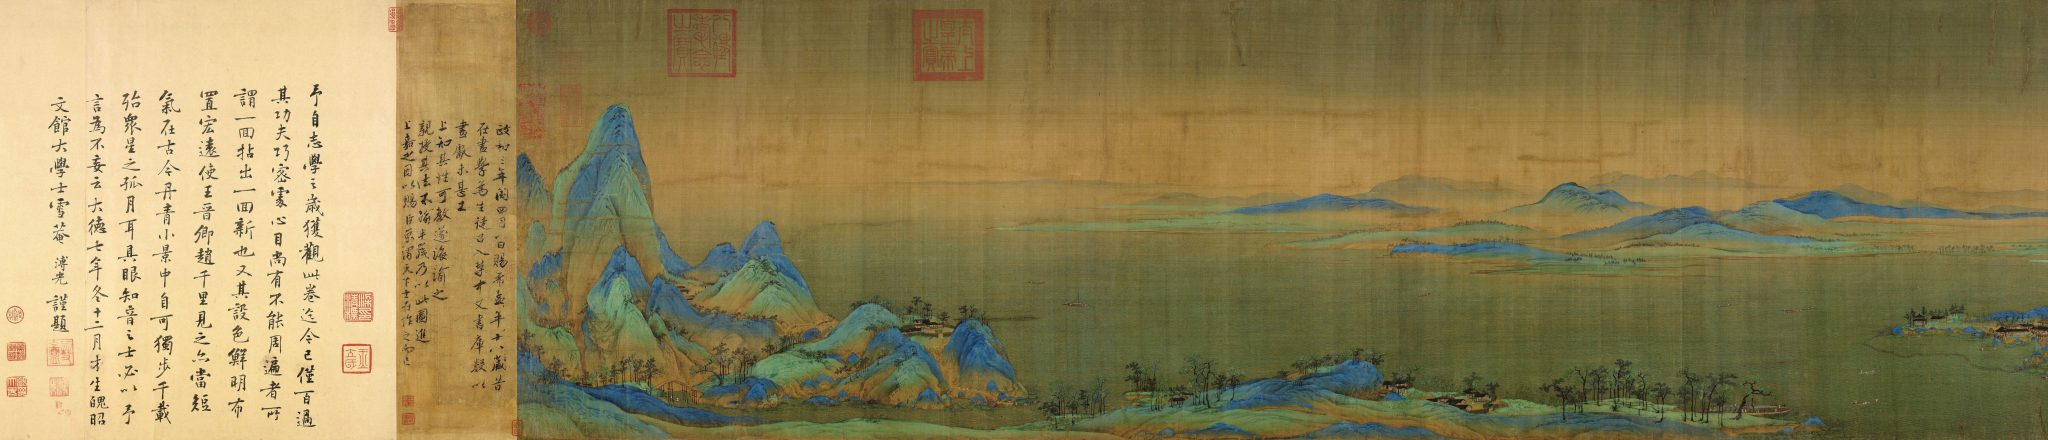 12_One_Example_of_Ancient_Chinese_Scroll_Paintings